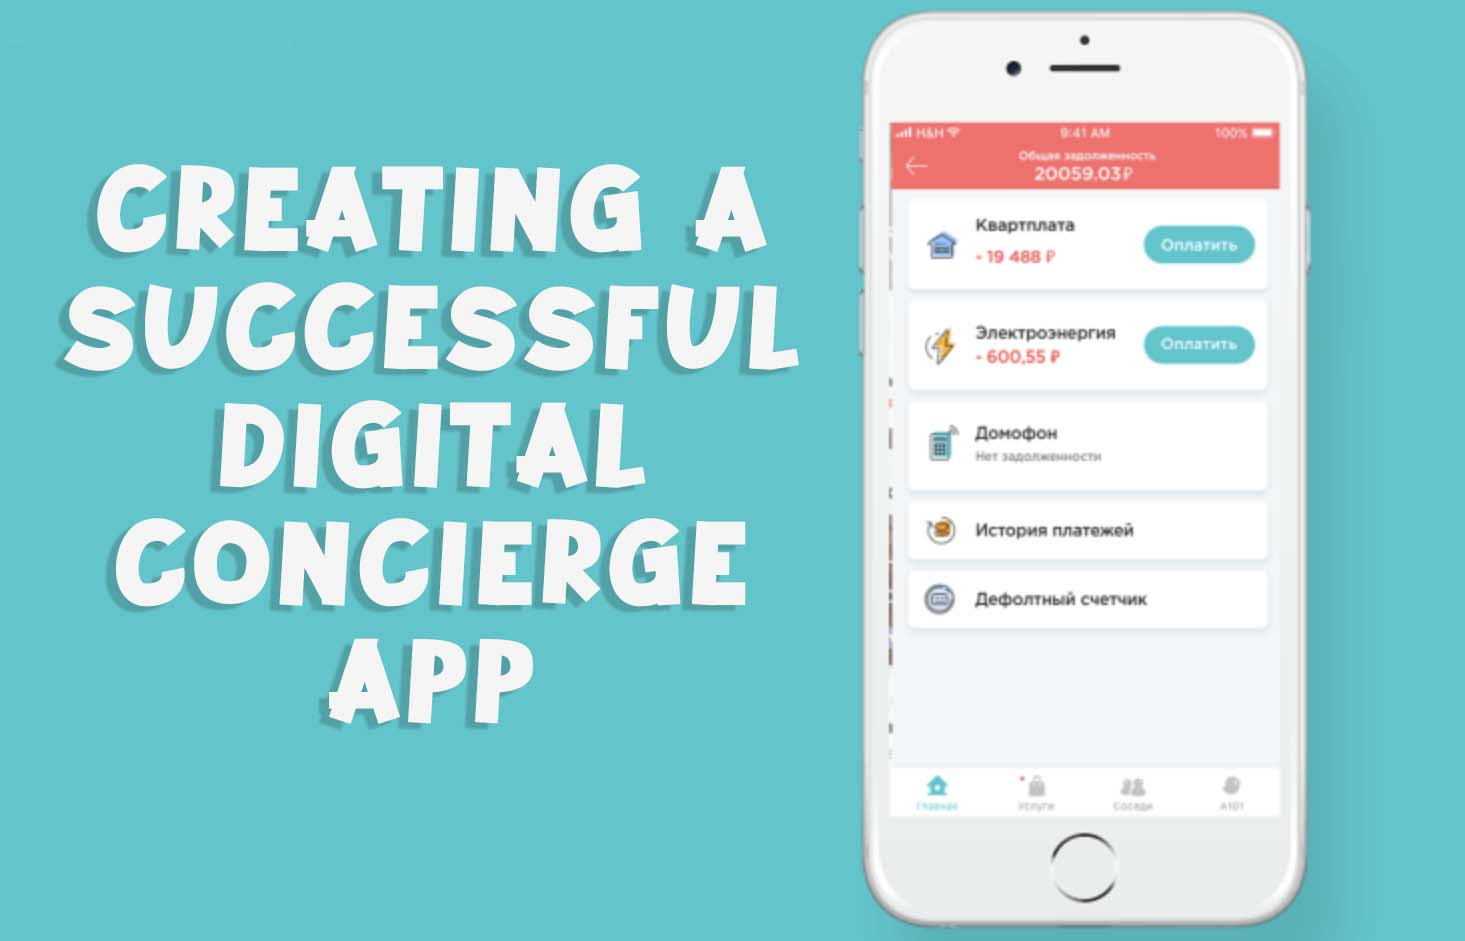 Creating a Successful Digital Concierge App